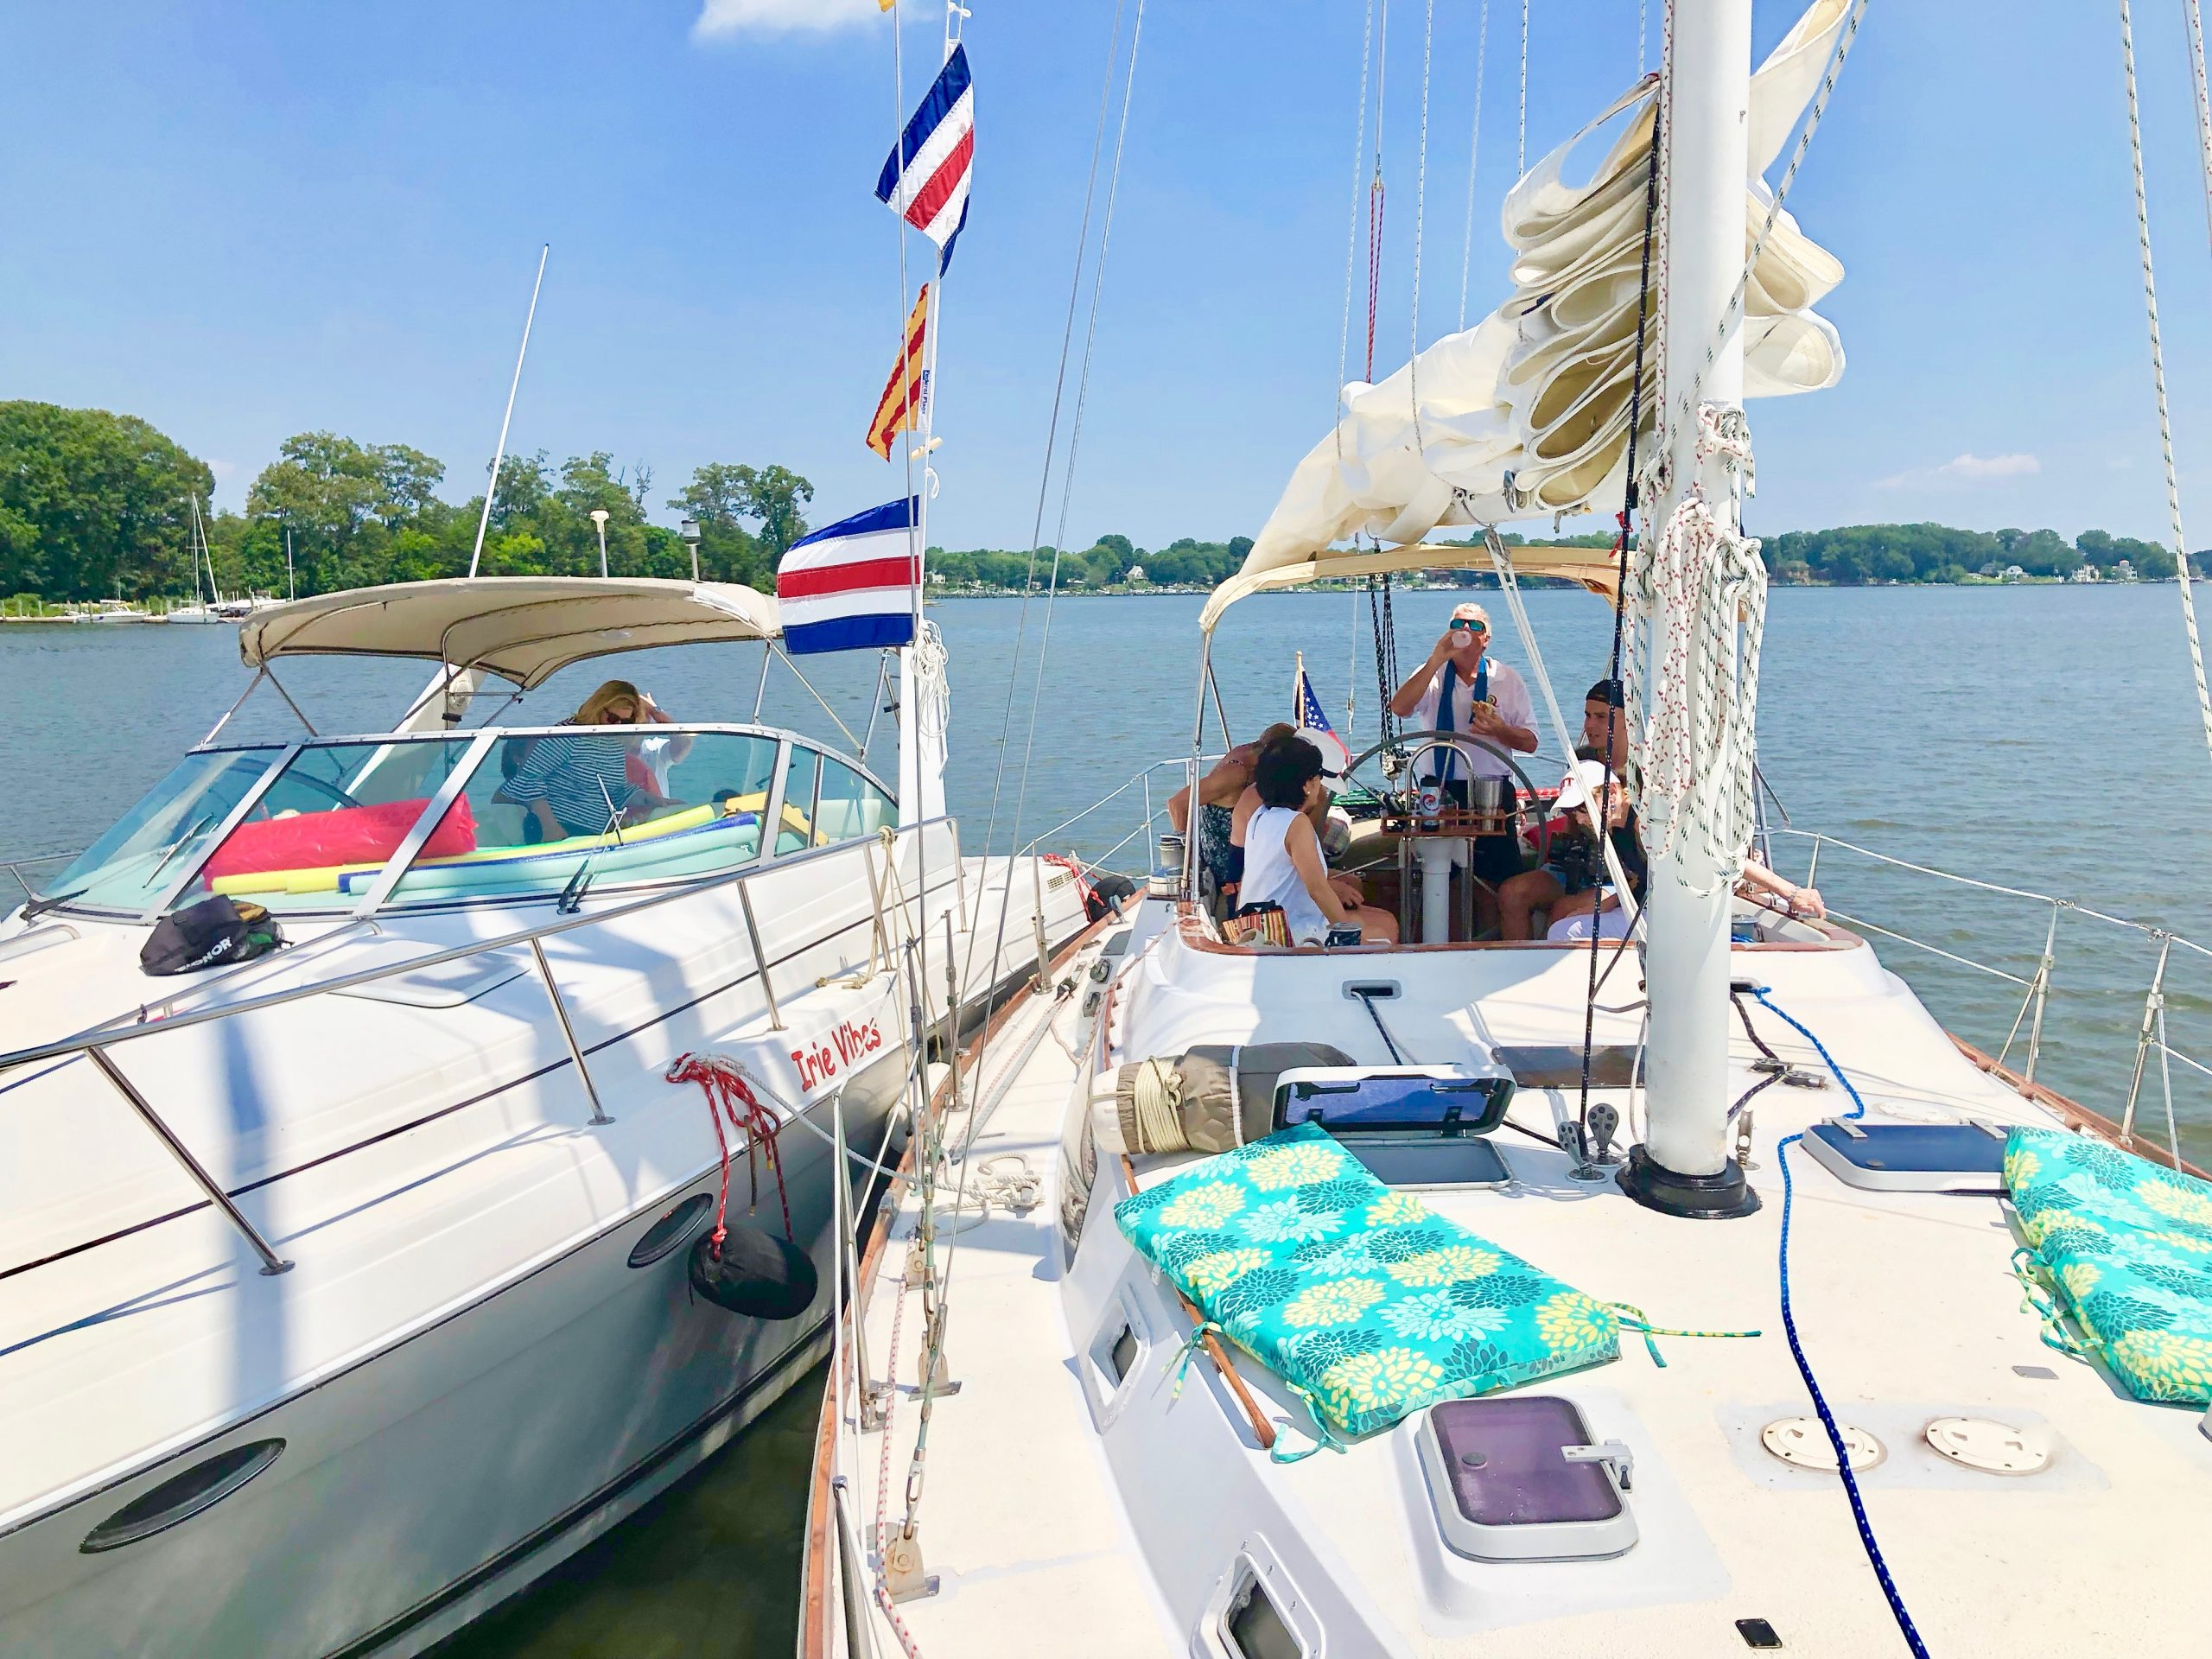 Chesapeake-bay-cruise-charter-yacht-rental-boat-party-annapolis-maryland-baltimore-birthday-corporate-island-chill-yacht-south-river